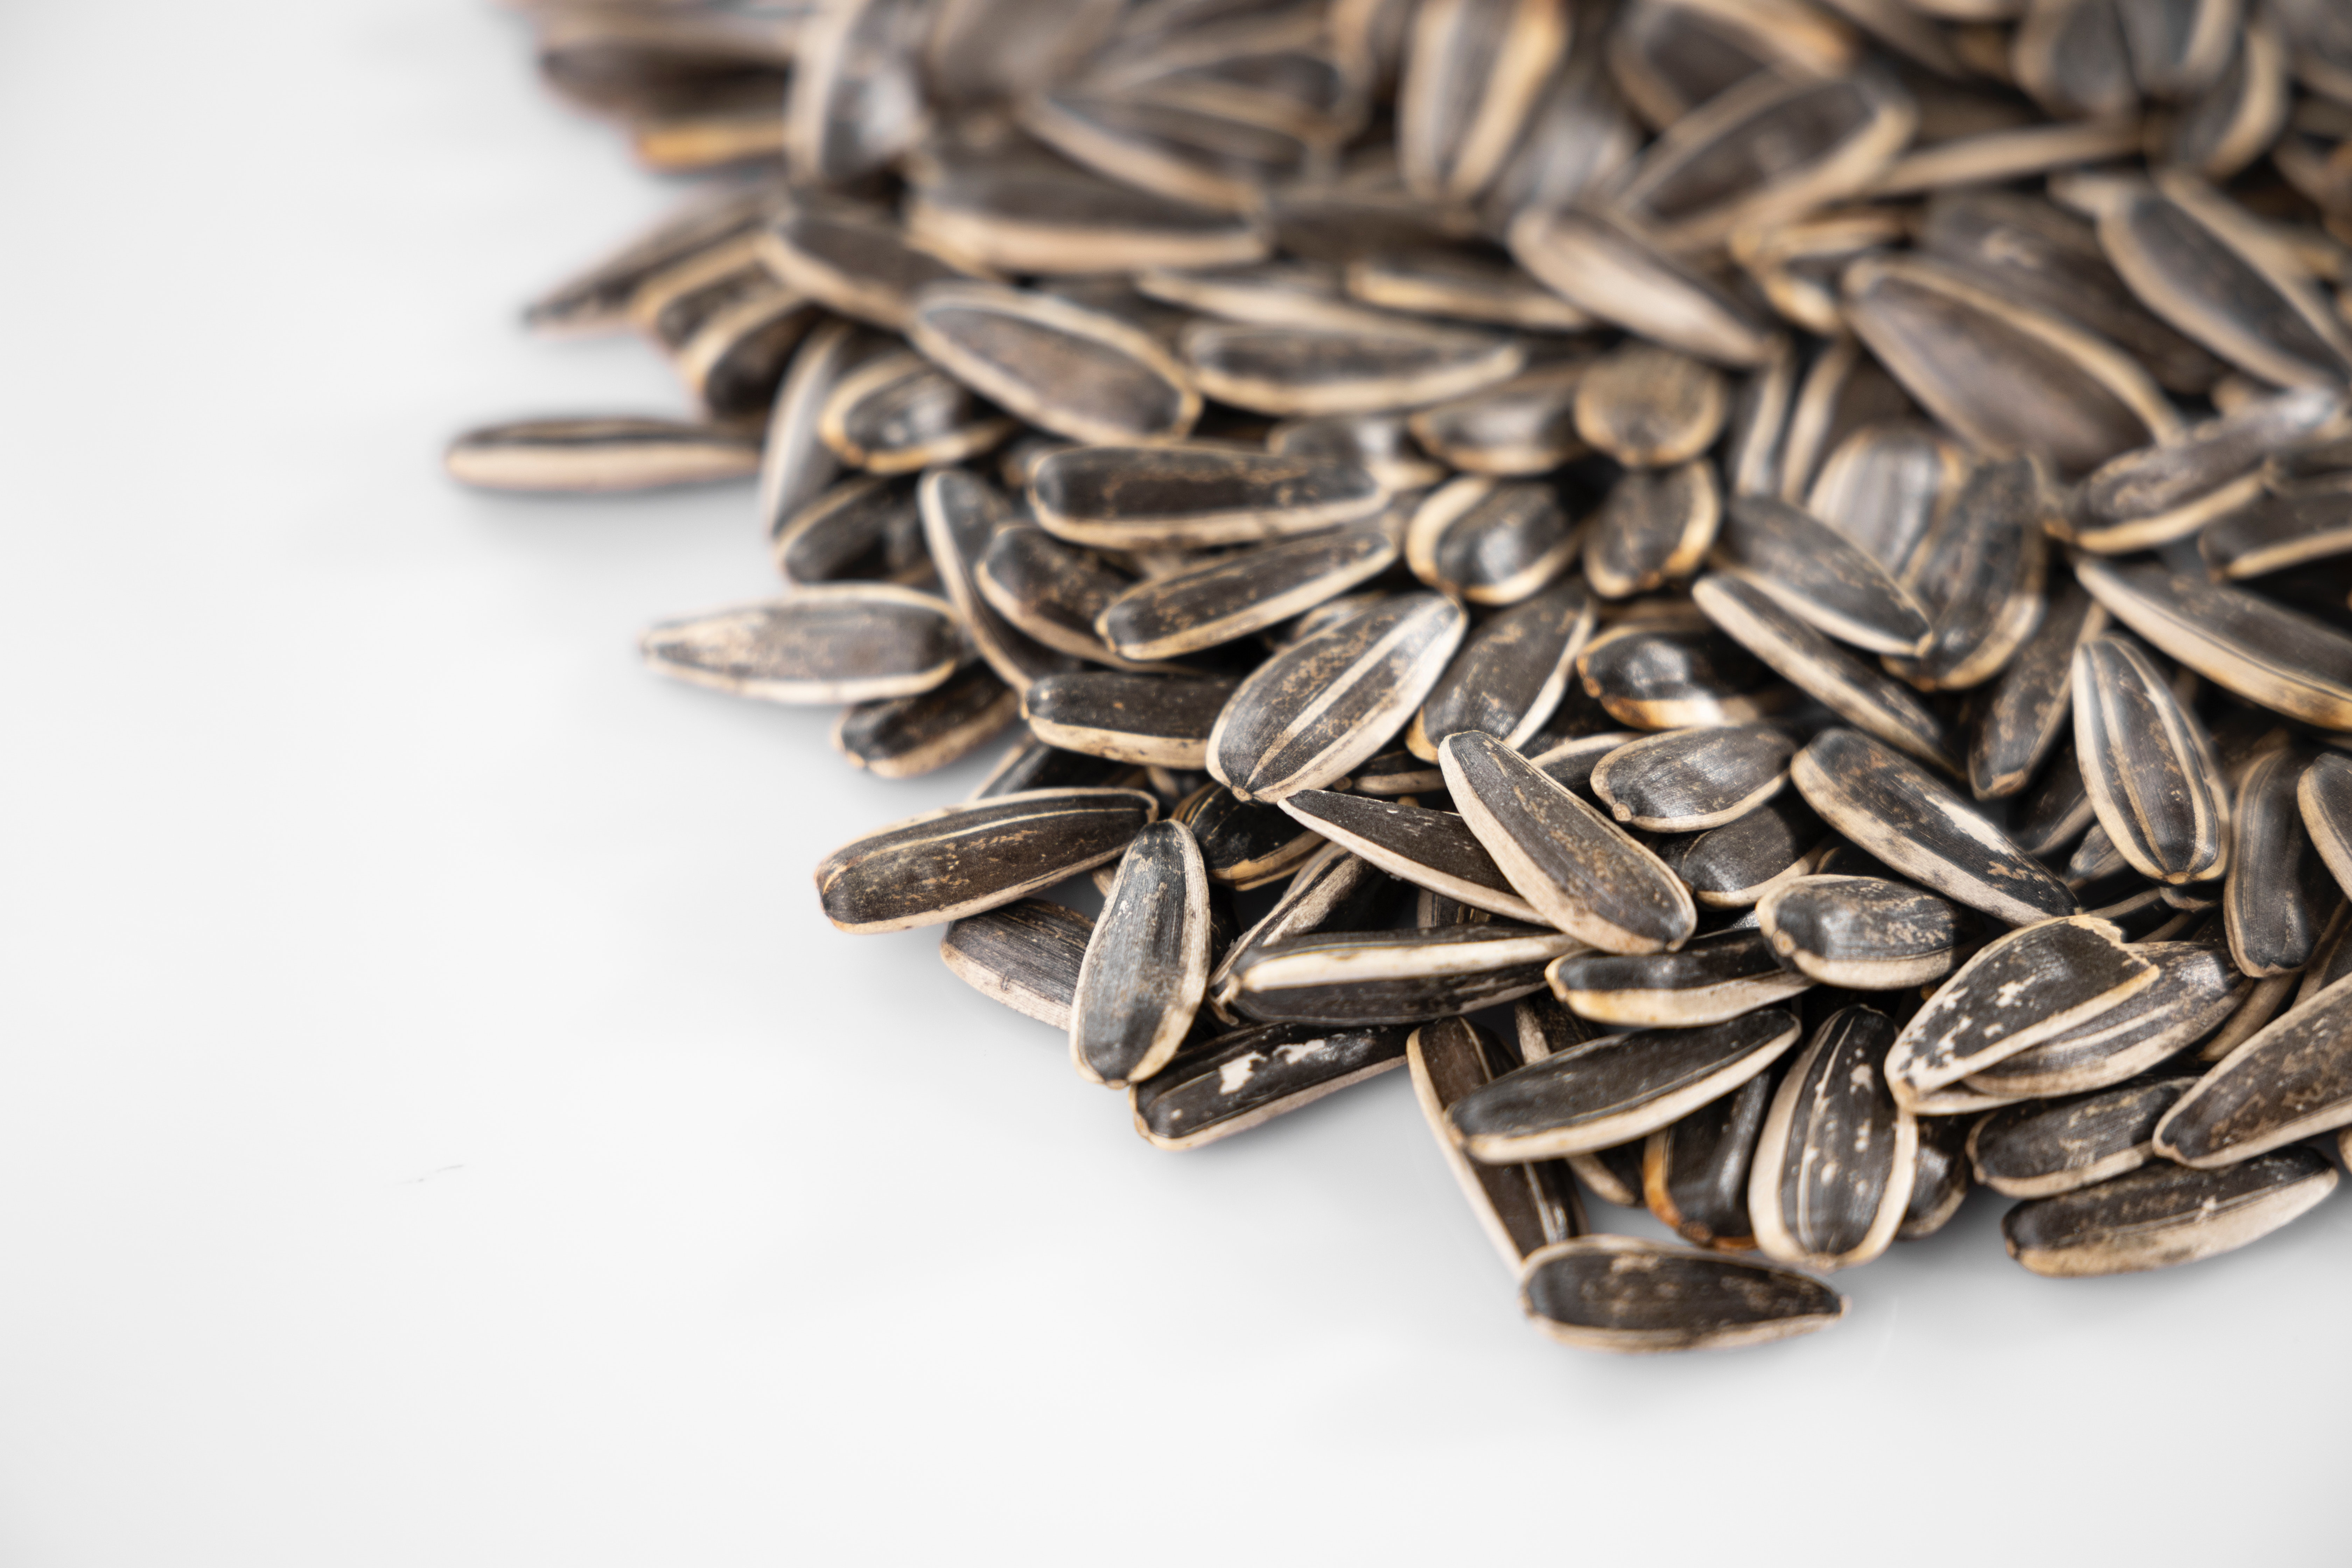 Non-flavoured sunflower seeds as a snack